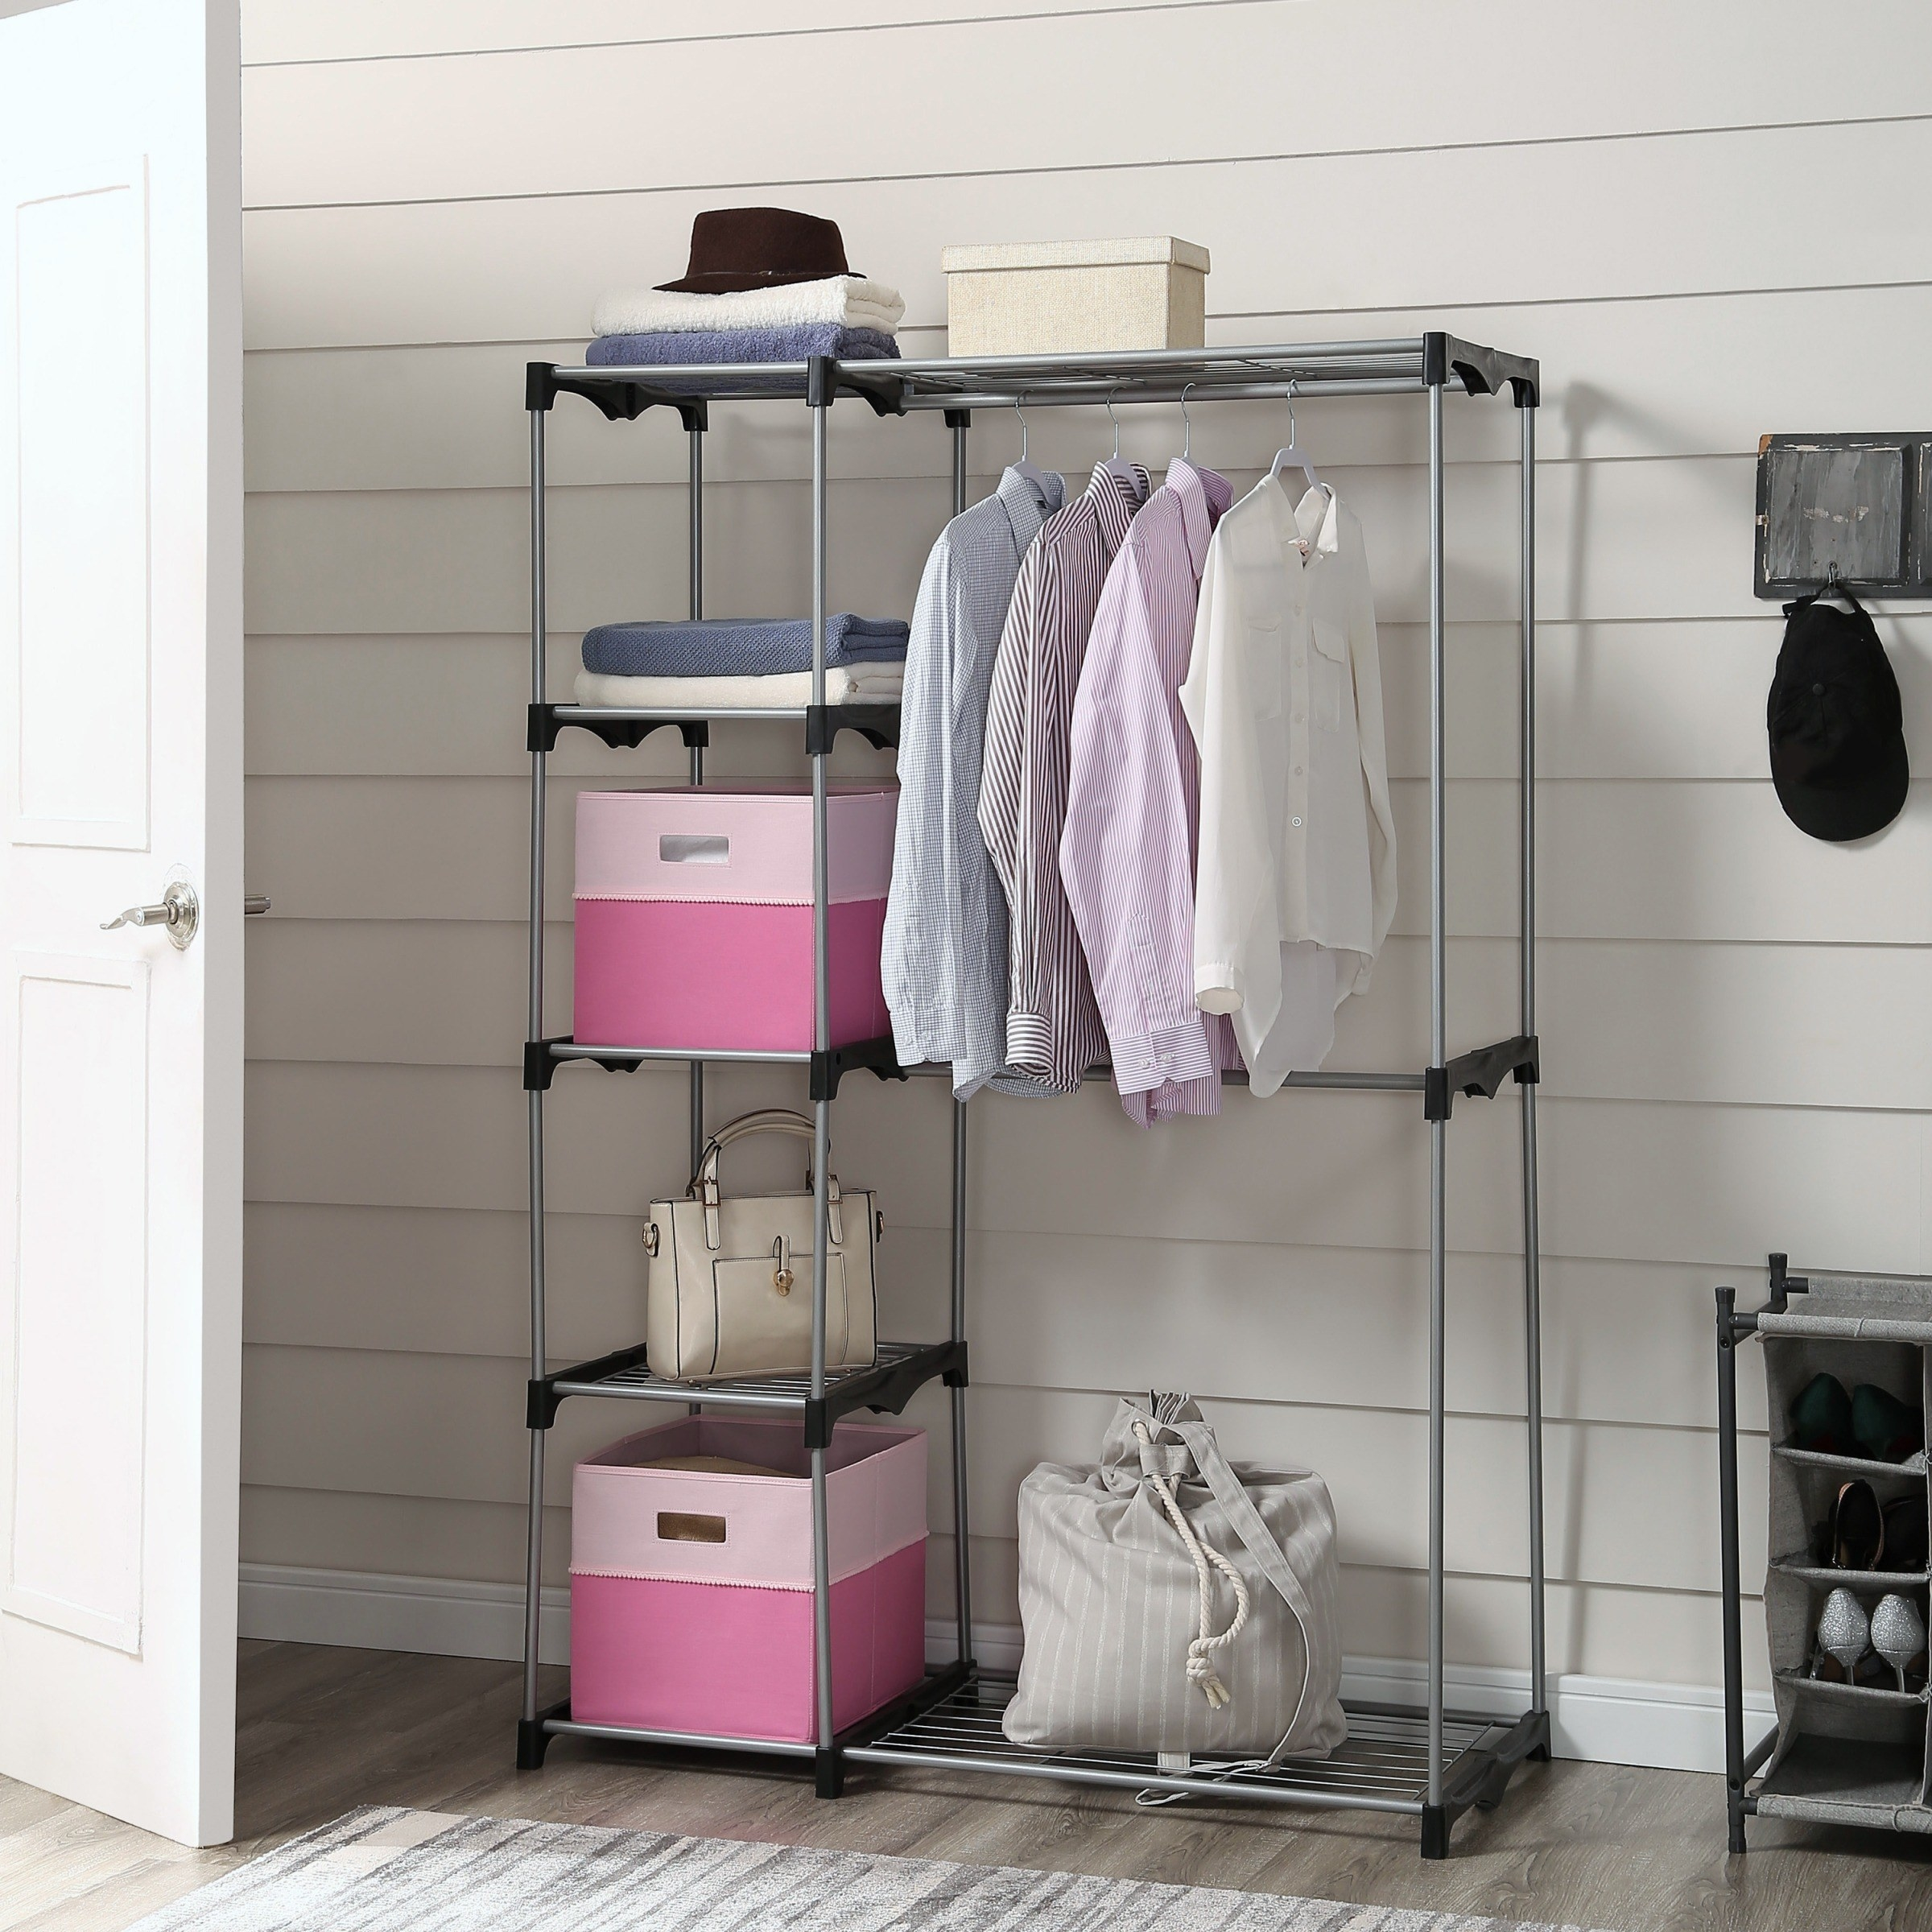 gray garment rack with clothes and accessories organized on it